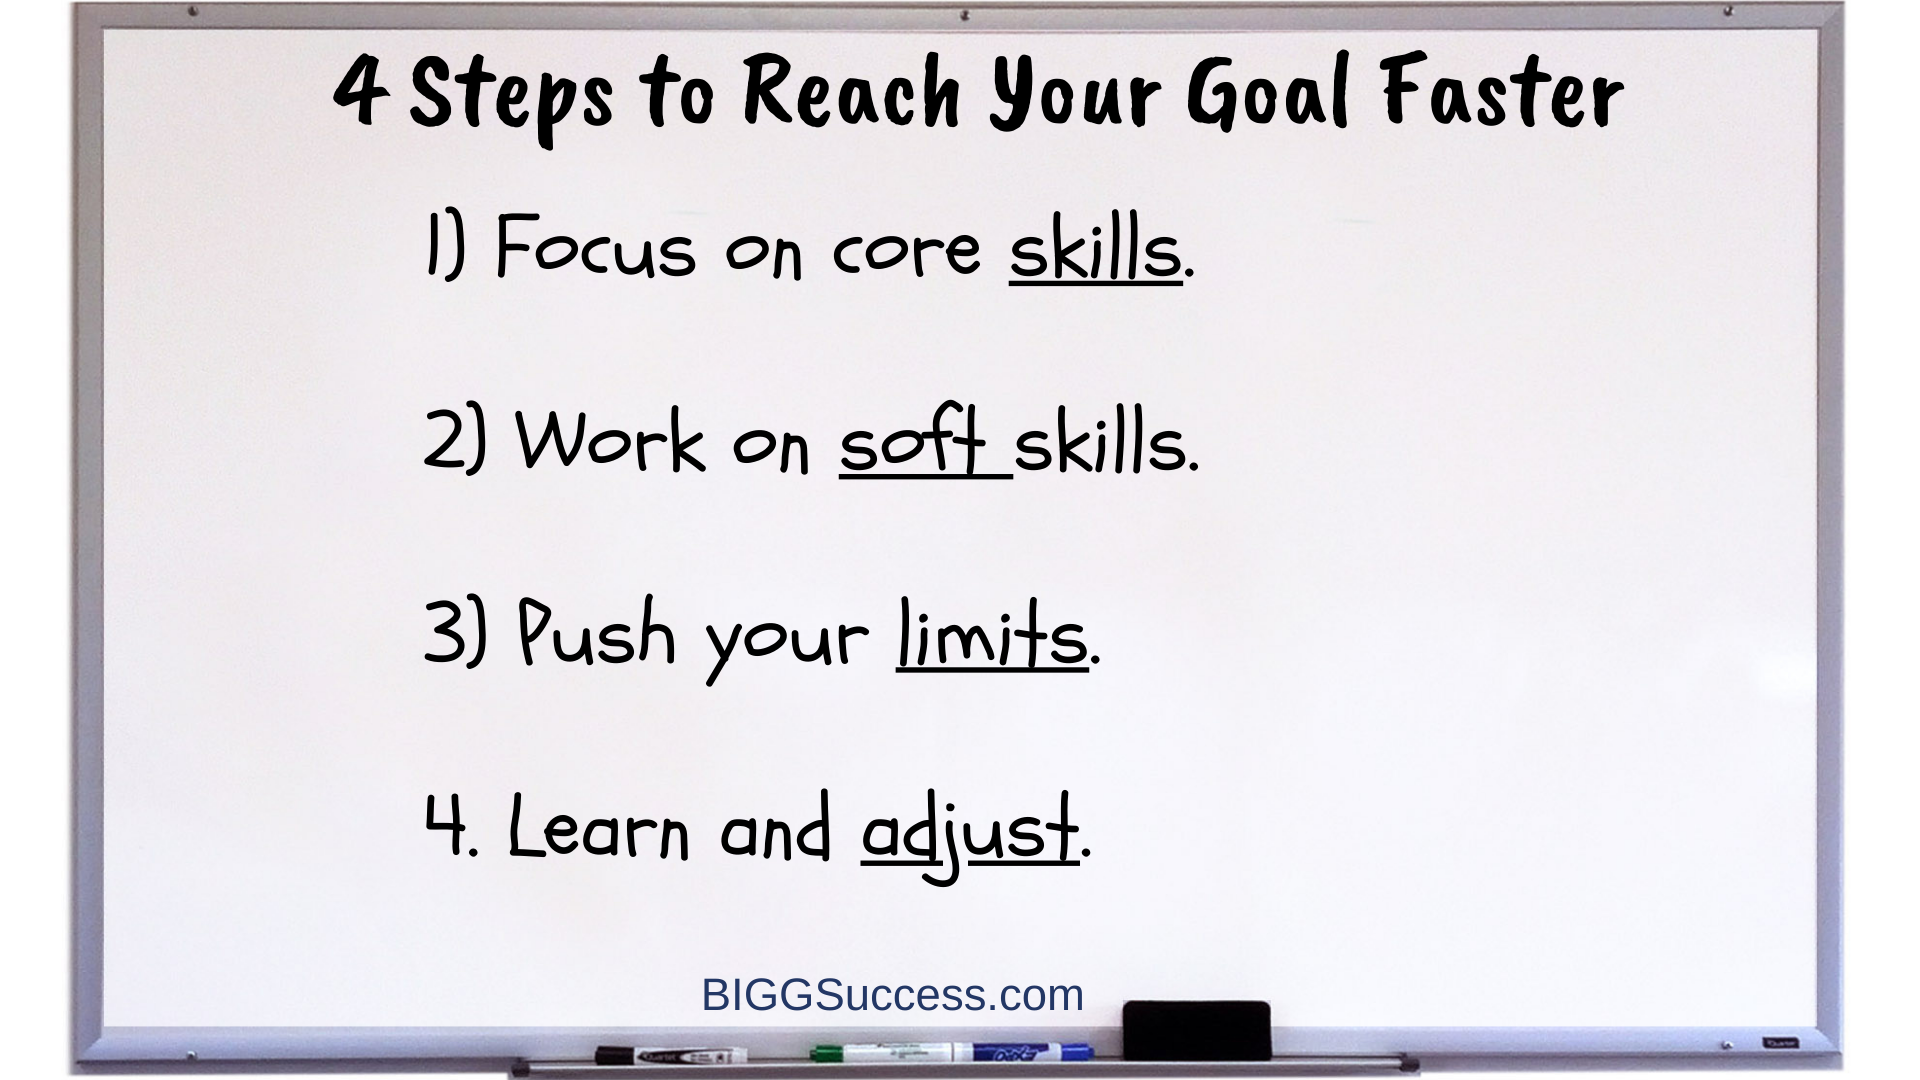 Whiteboard 1060 - 4 Steps to Reach Your Goal Faster